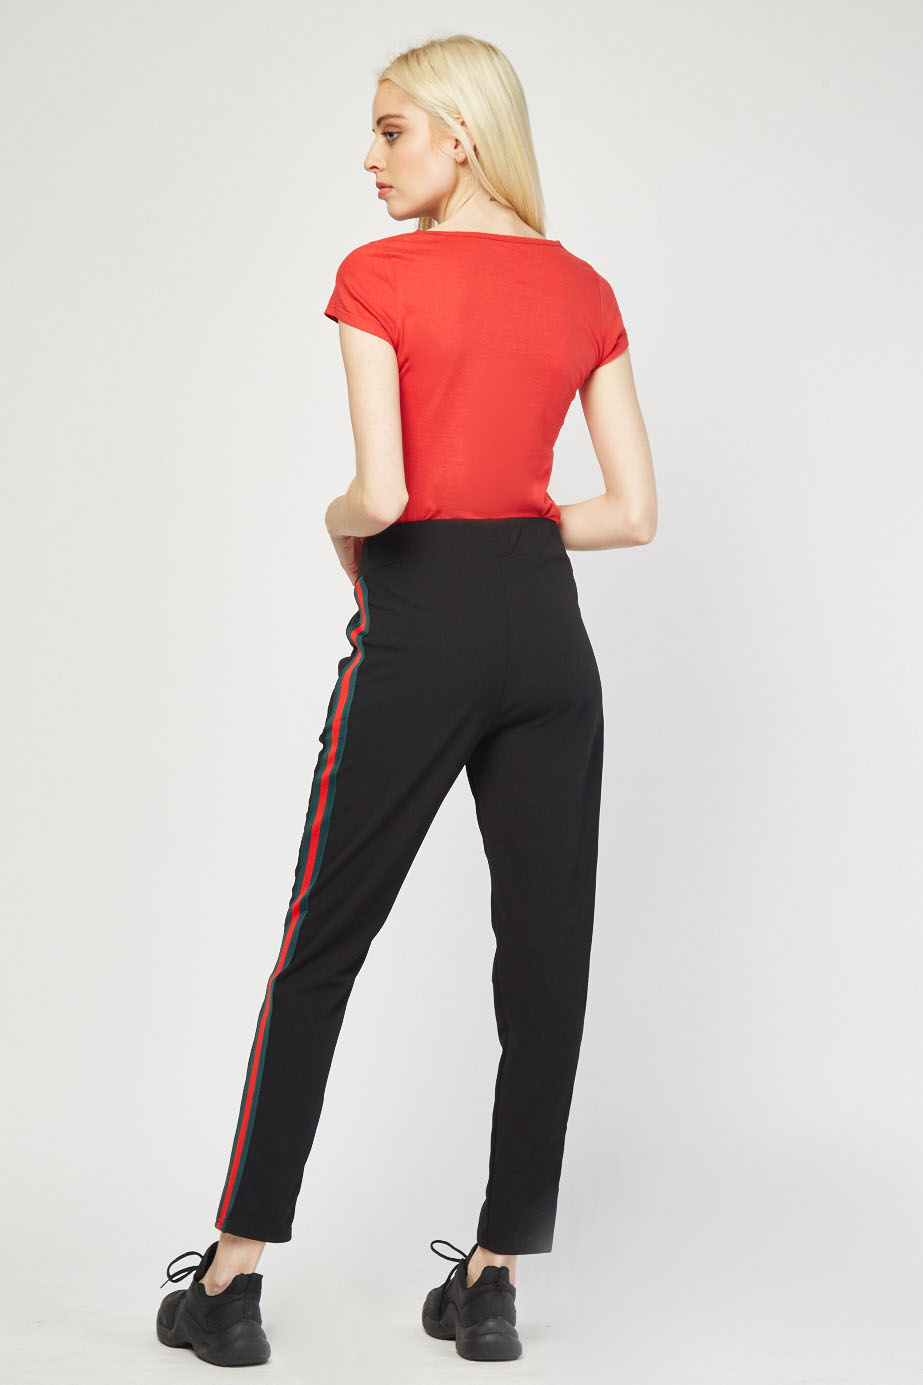 Jogger Style Striped Side Pants Red Just 163 5